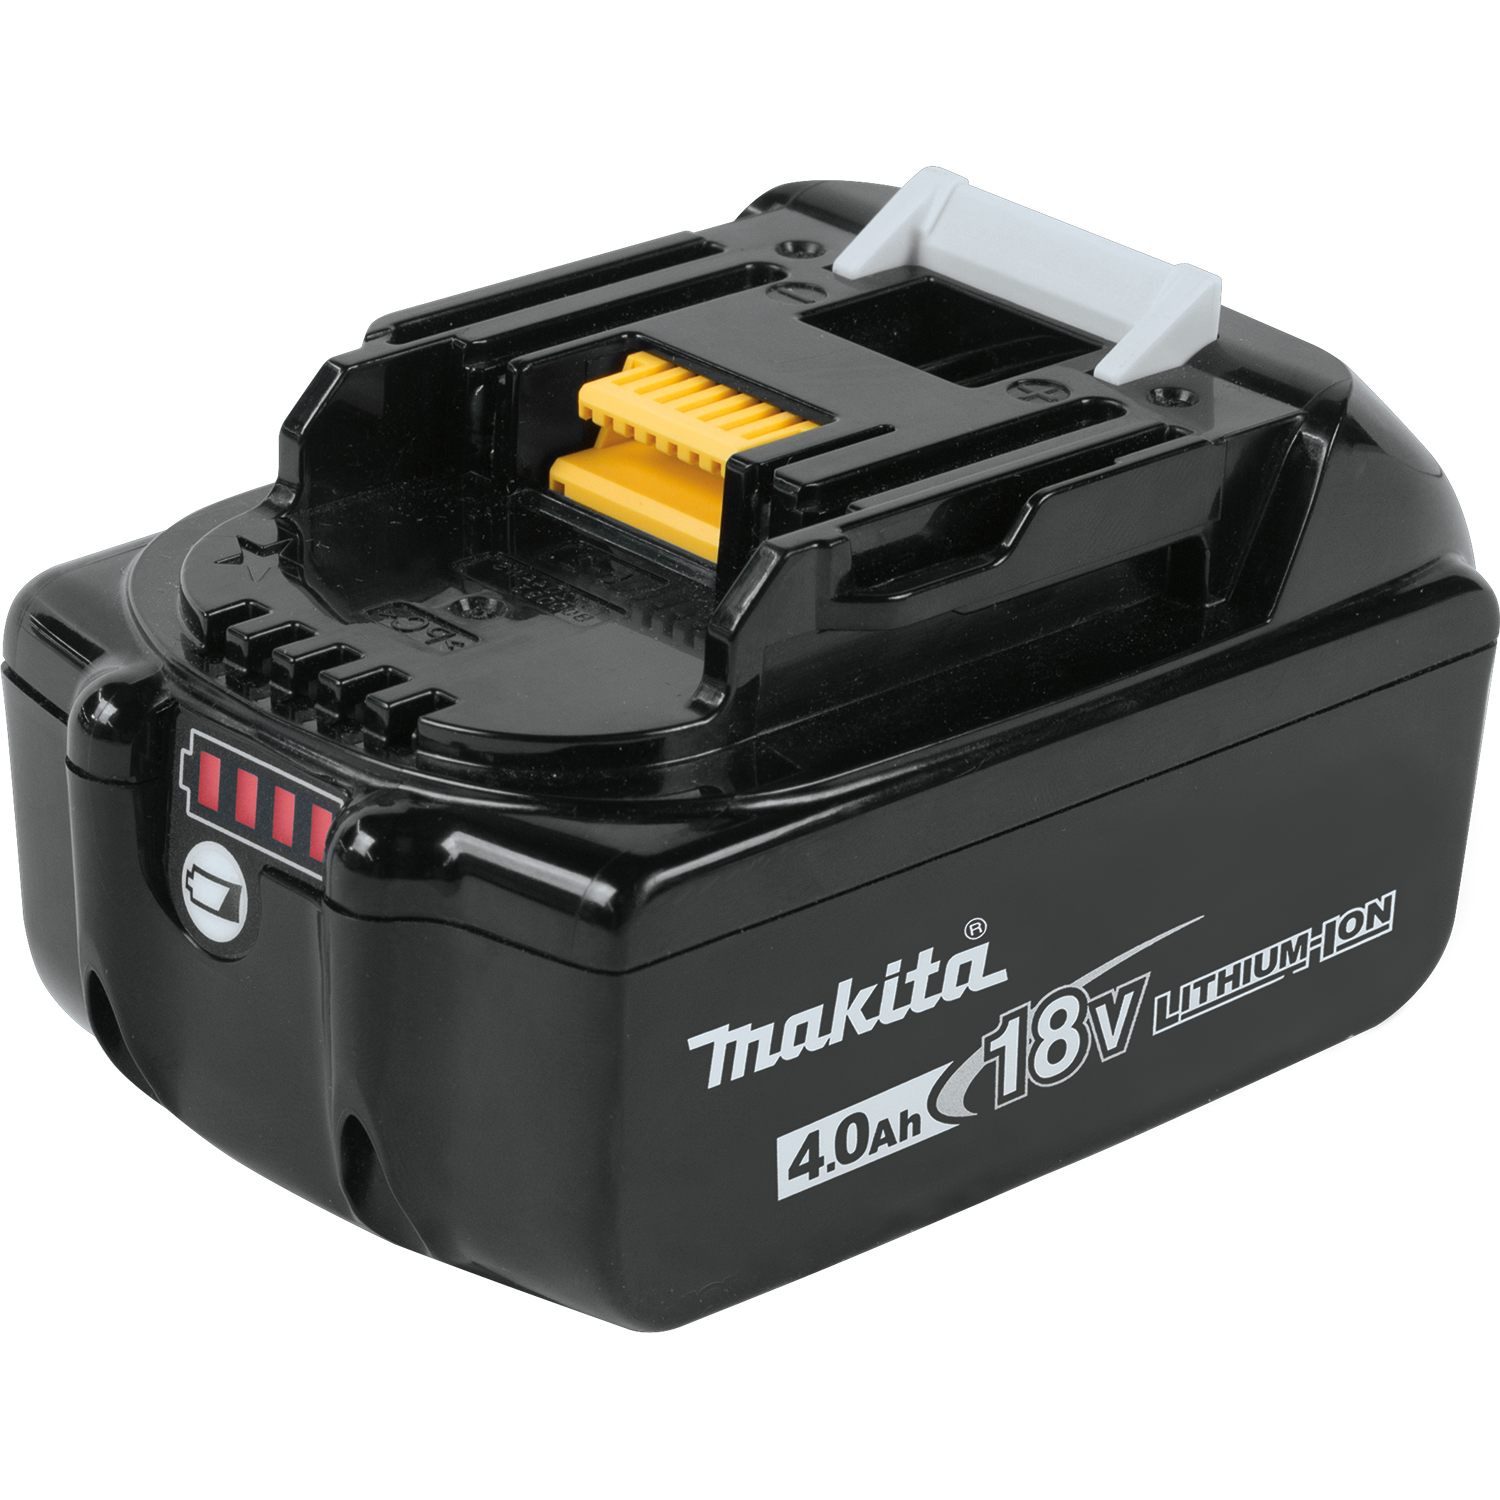 820f93cf 340d 48d8 a381 70de57a4e045_bl1840b_p_1500px makita usa product details bl1840b  at edmiracle.co